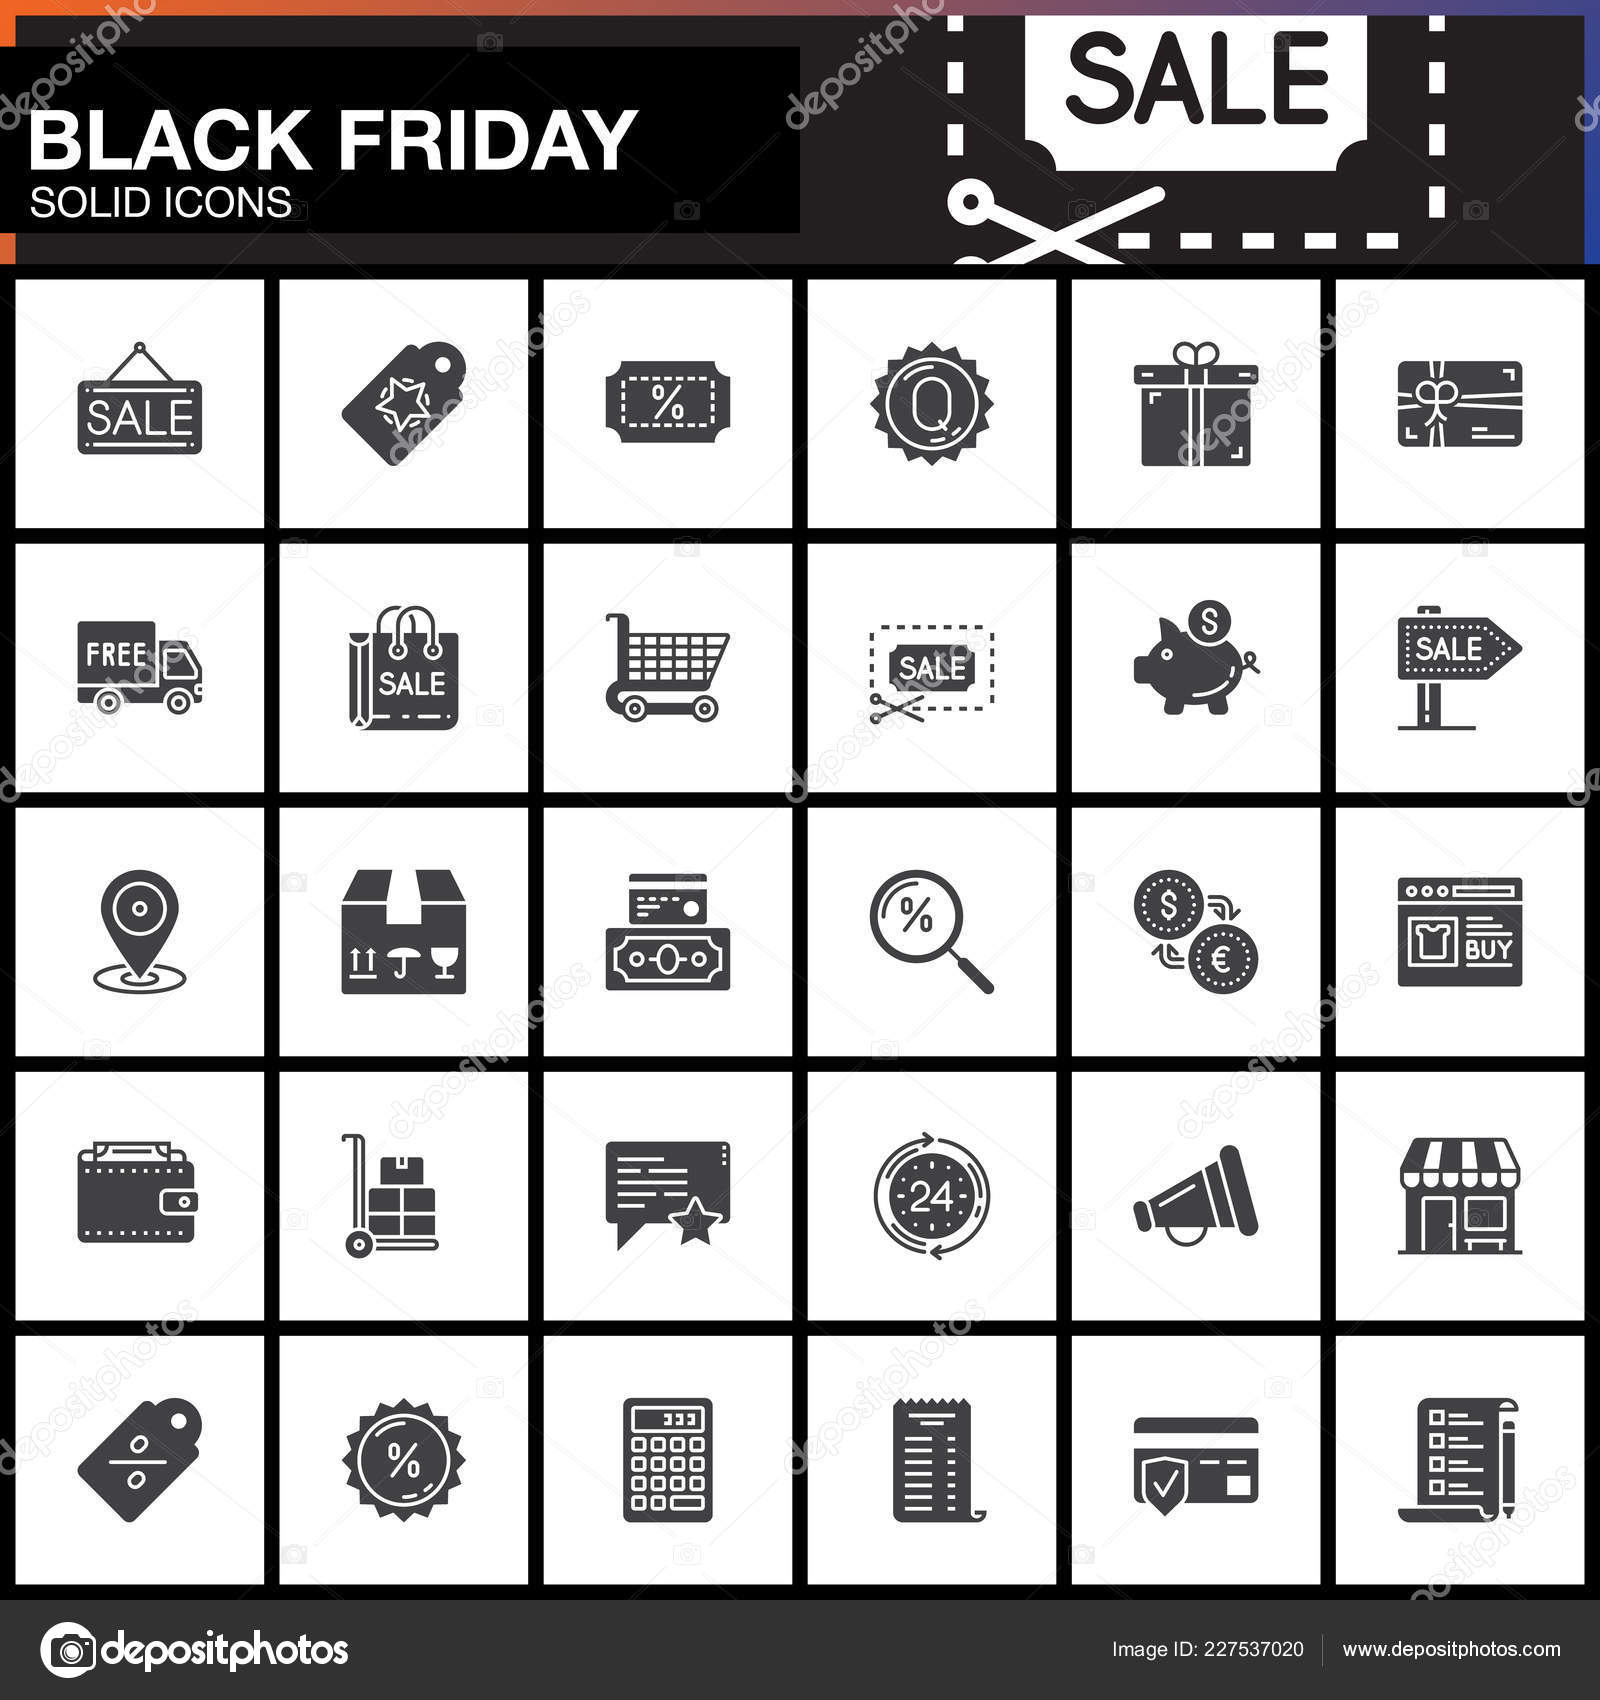 Black Friday Sale Vector Icons Set Shopping Modern Solid